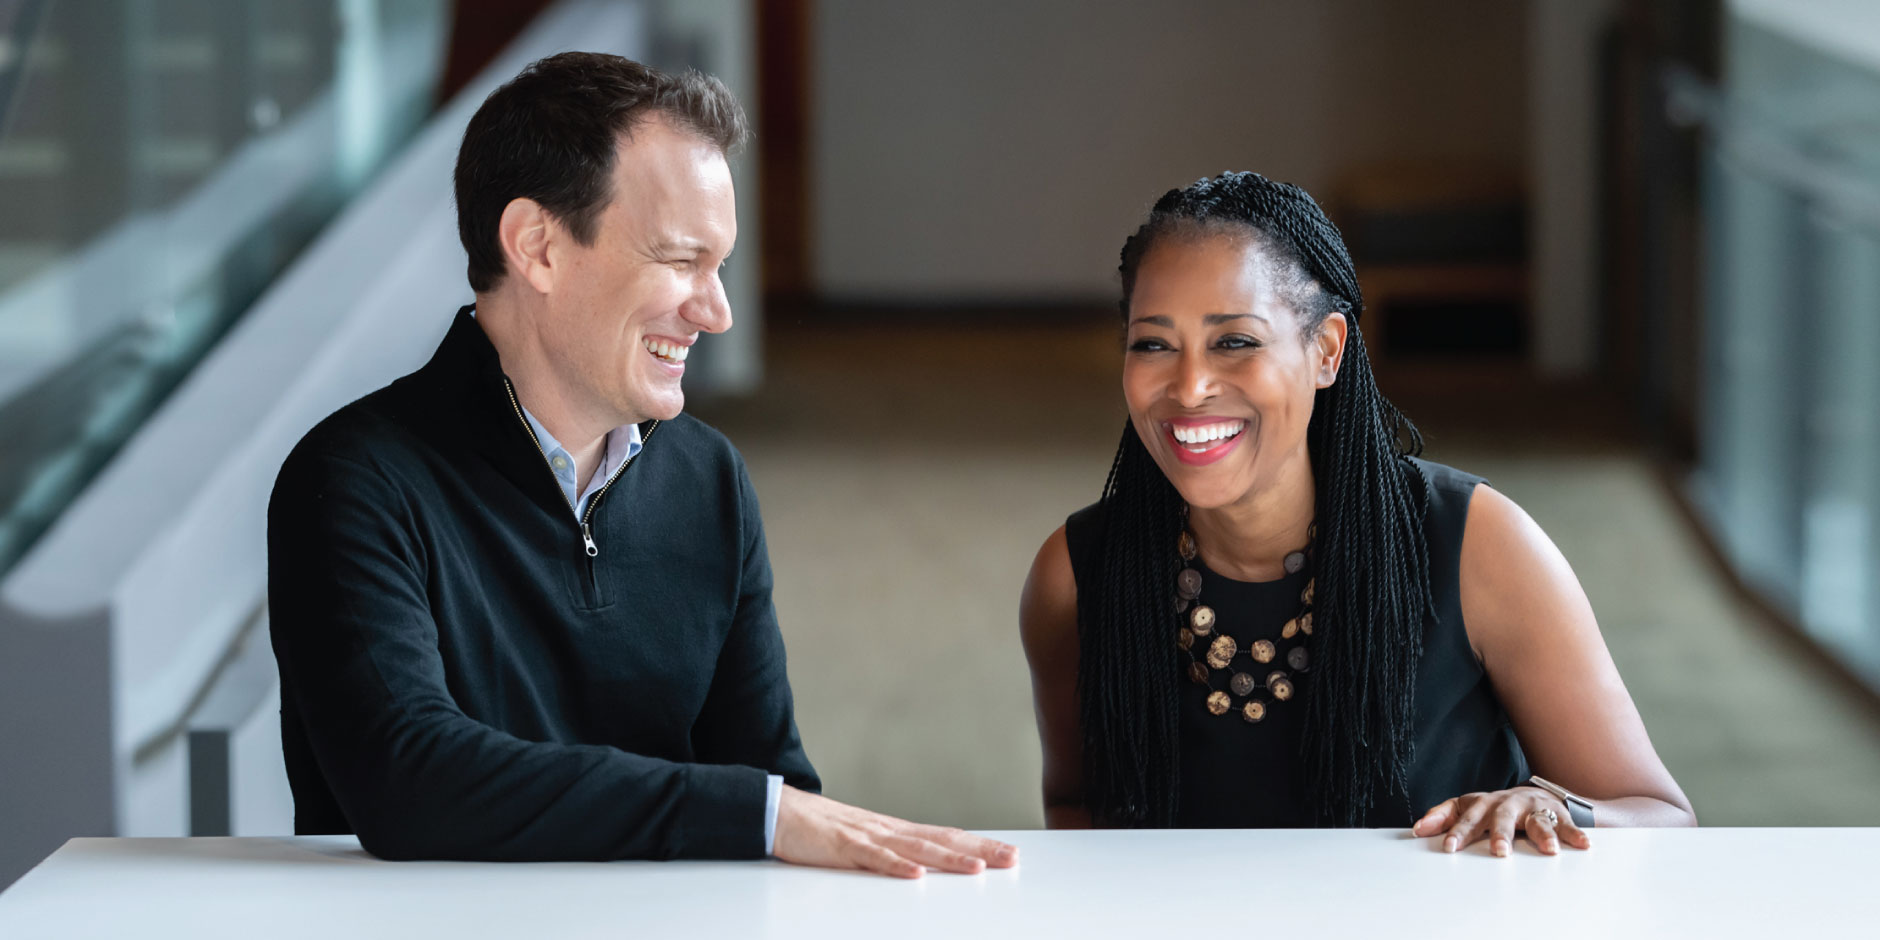 Shawn Achor (left) and Laysha Ward (right) laughing mid-conversation